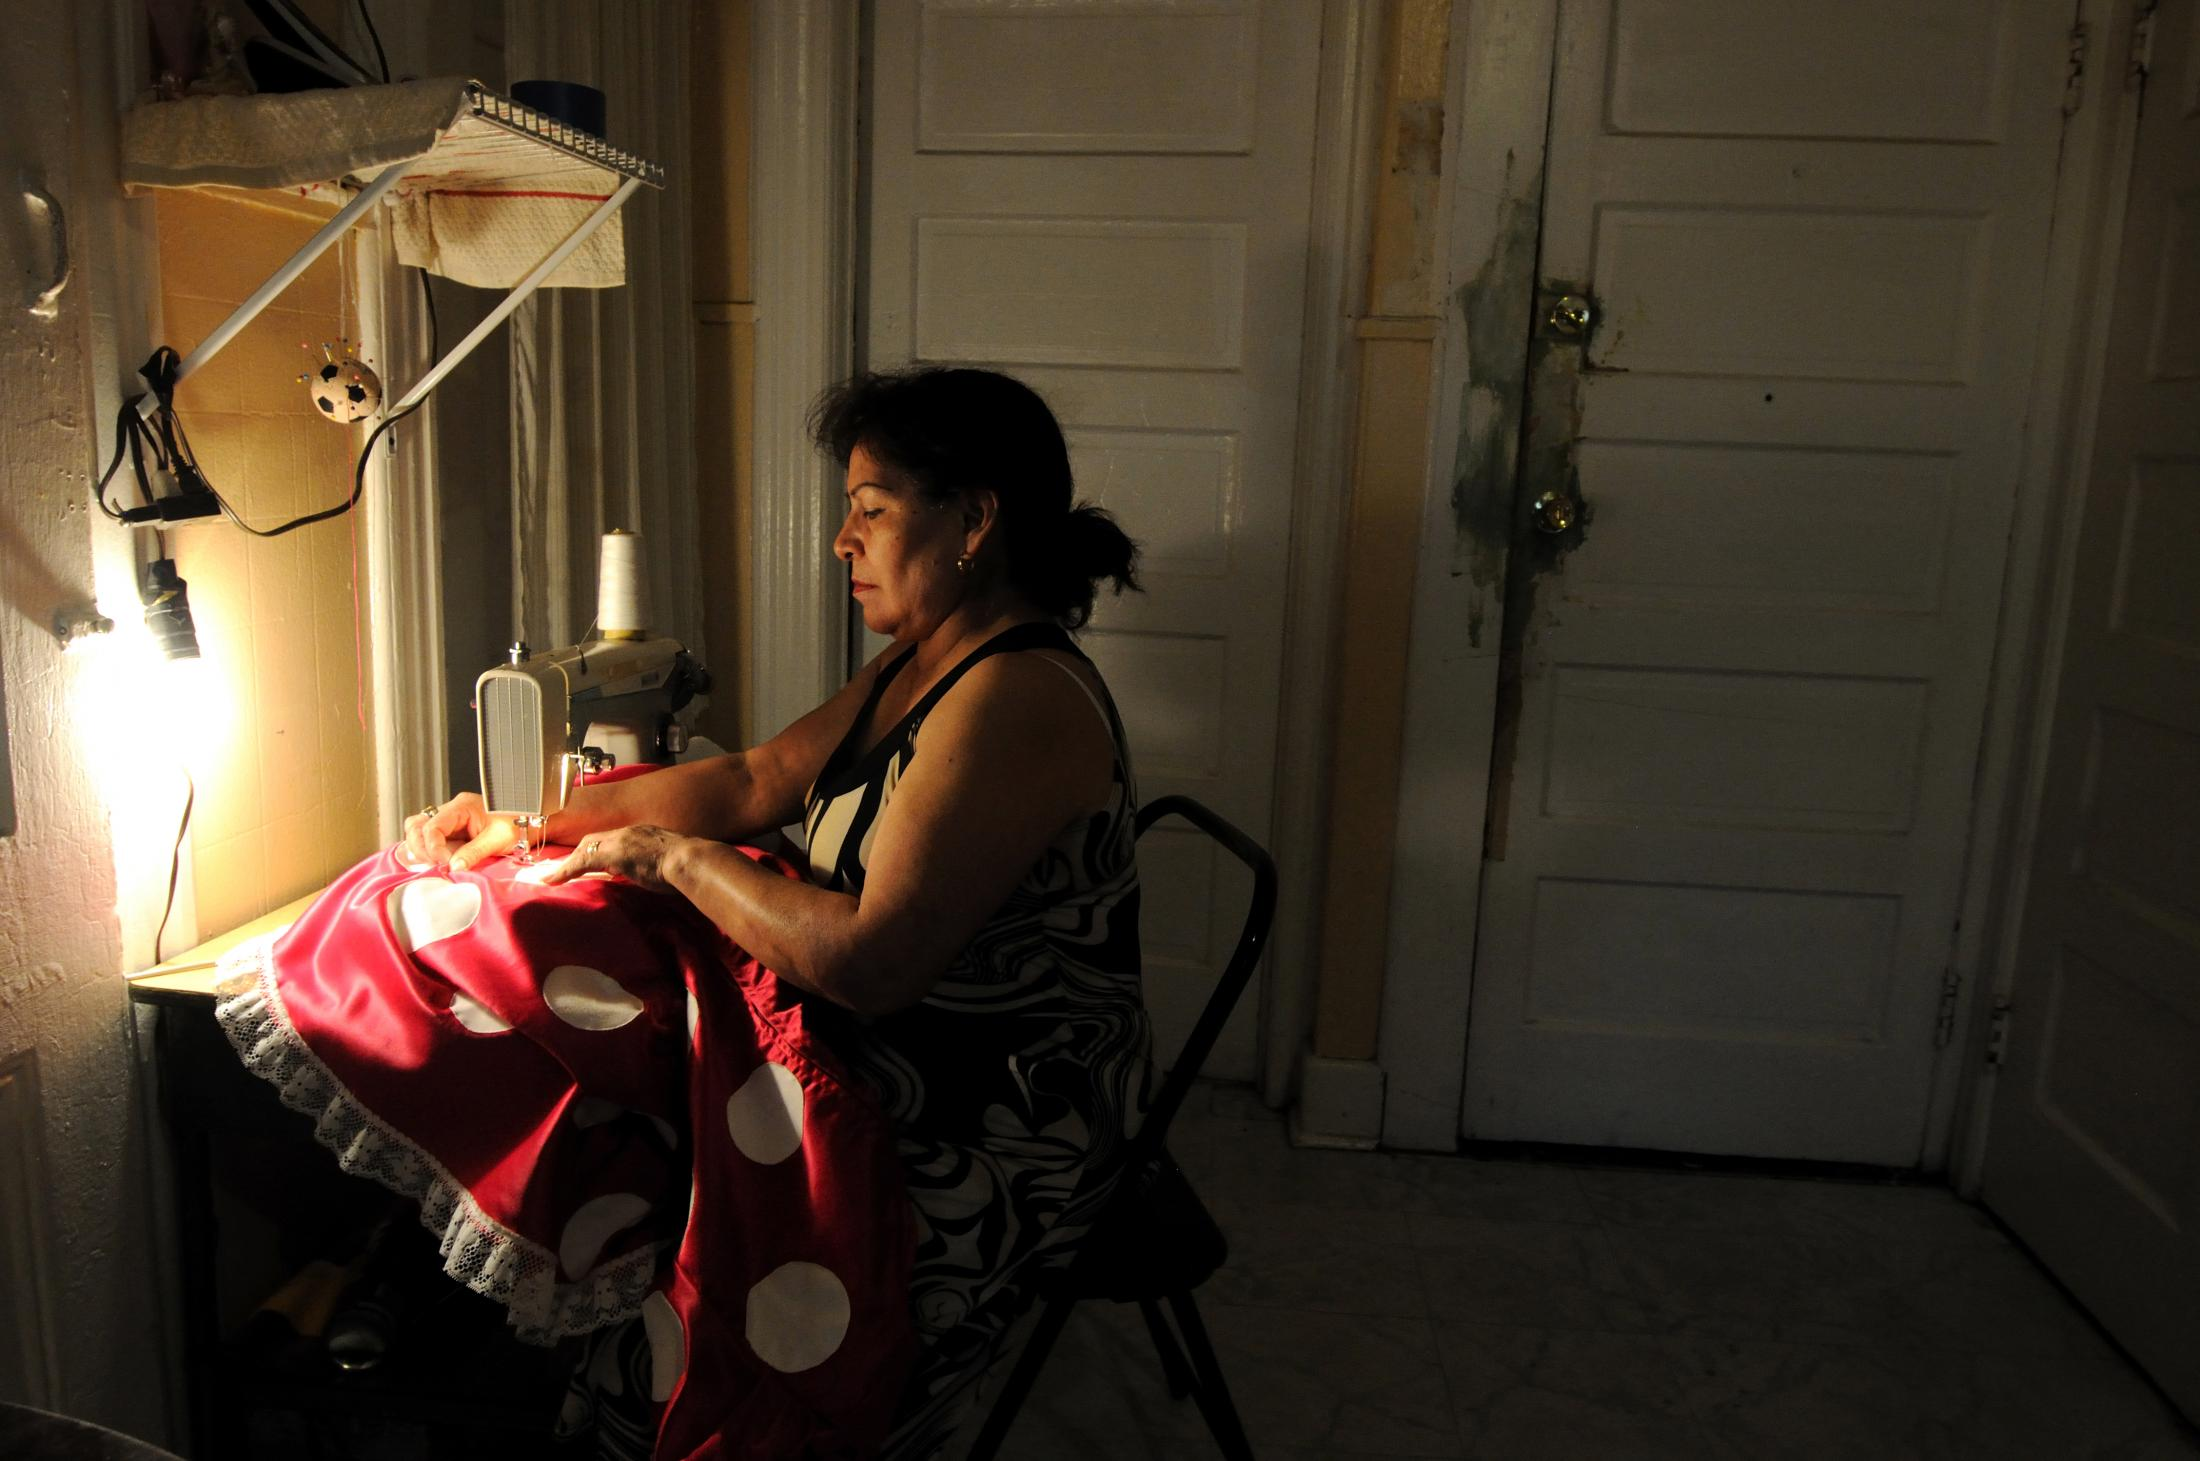 New York, UNITED STATES Doña Berta,55,from Mexico repairs her Minnie Mouse costume at her house in New Jersey. 2013 Joana Toro.